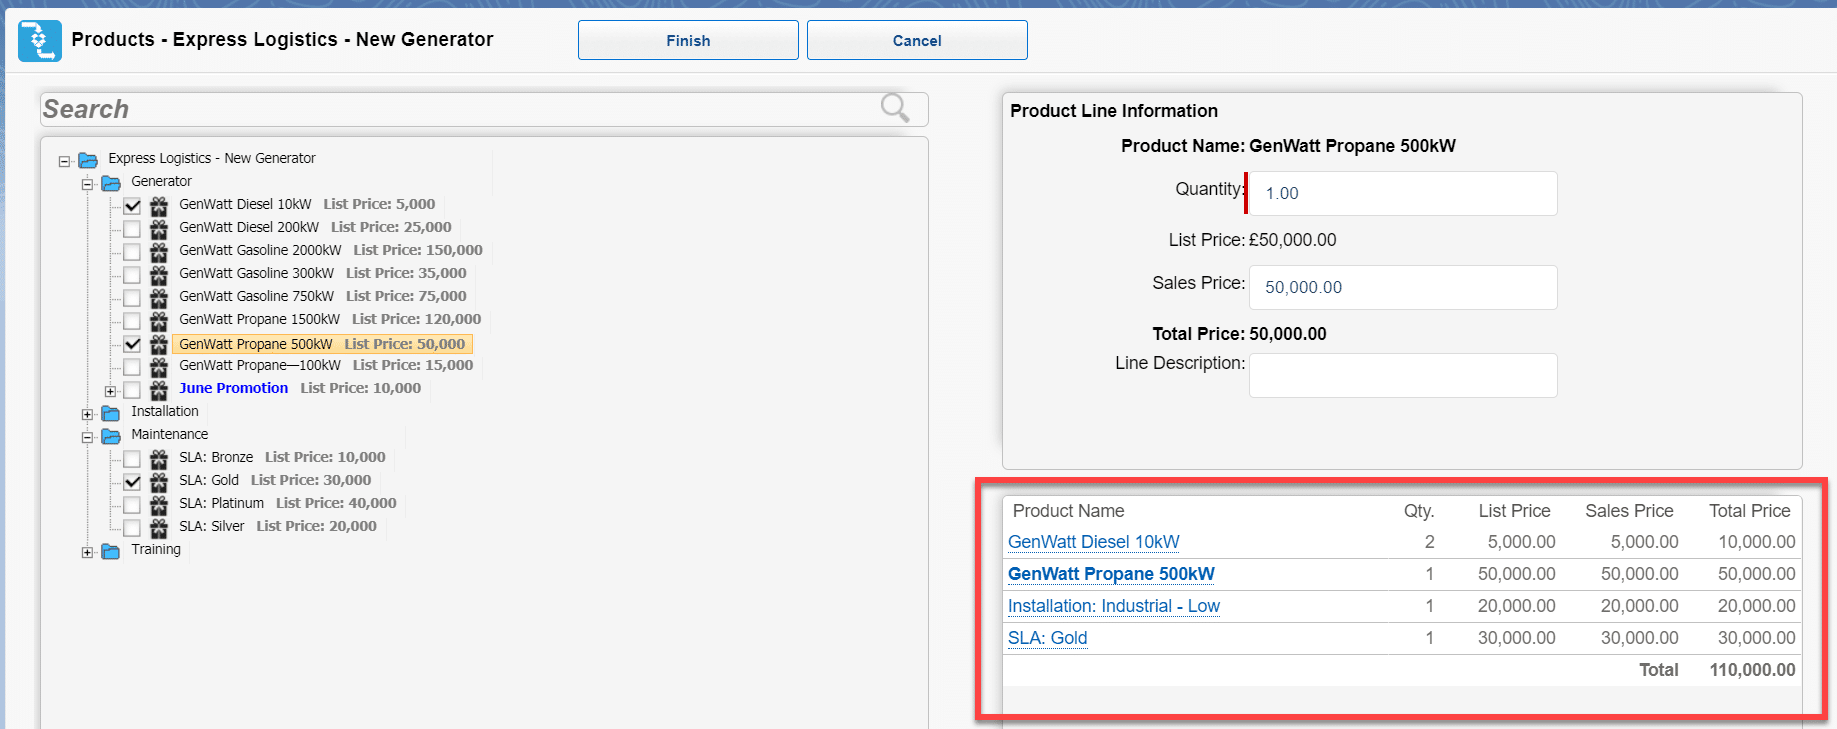 The list of products added to the opportunity builds up in the bottom right corner of the wizard